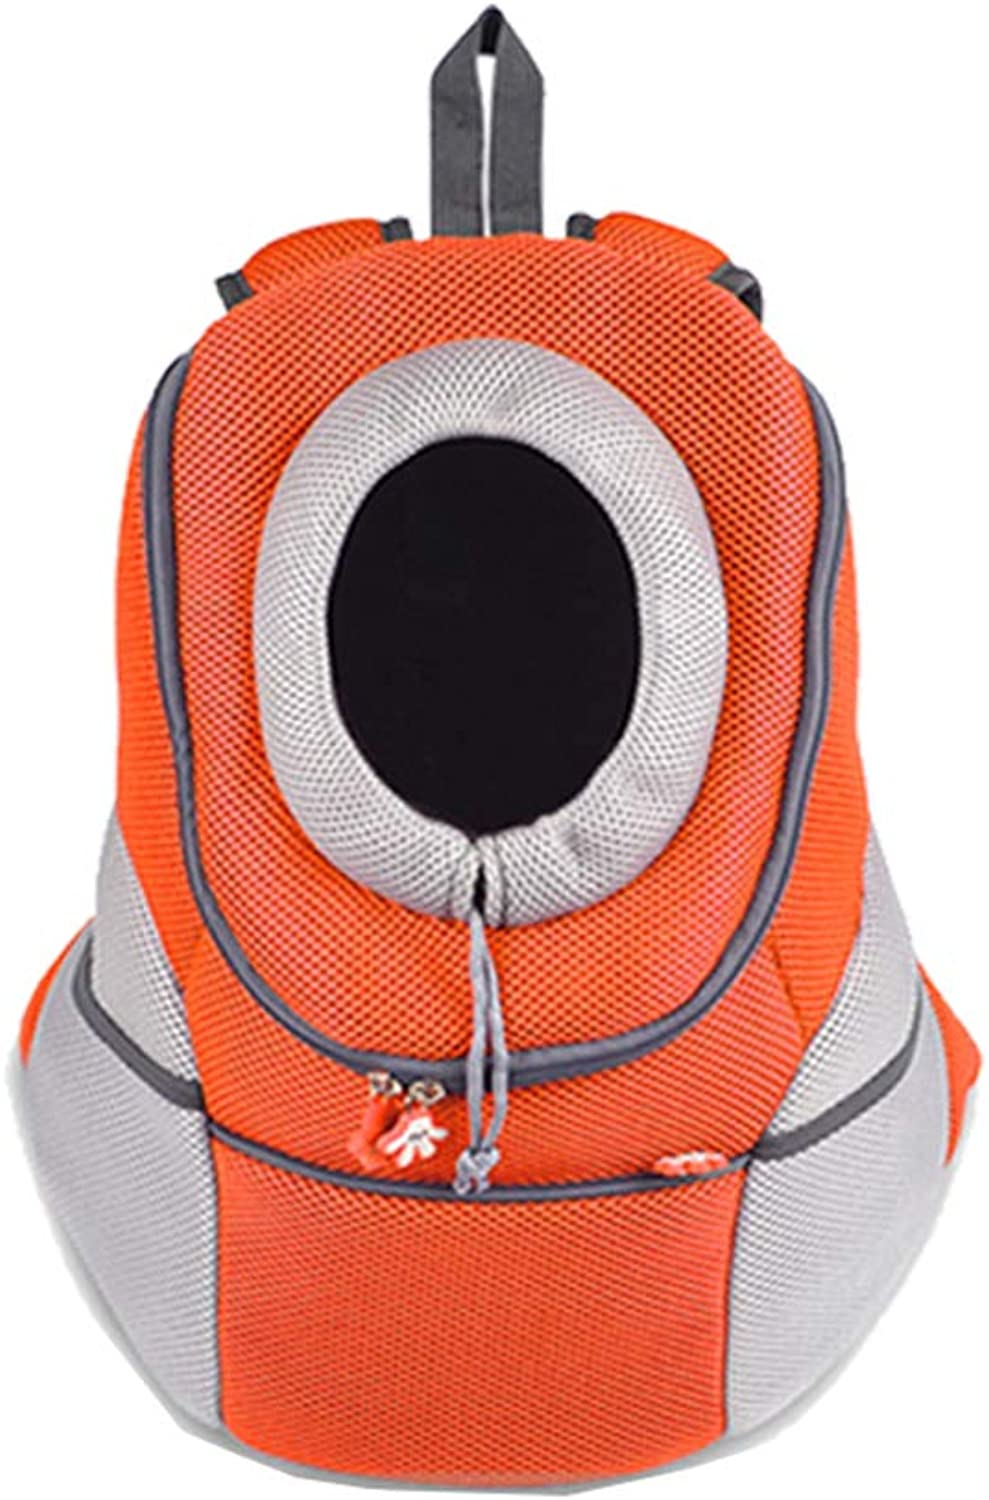 Aida Bz Pet Bag Cat Backpack Teddy Out Of The Cat Cage Dog Bag Cat Cat Bag Cat Portable Cage Bag Box Supplies,orange